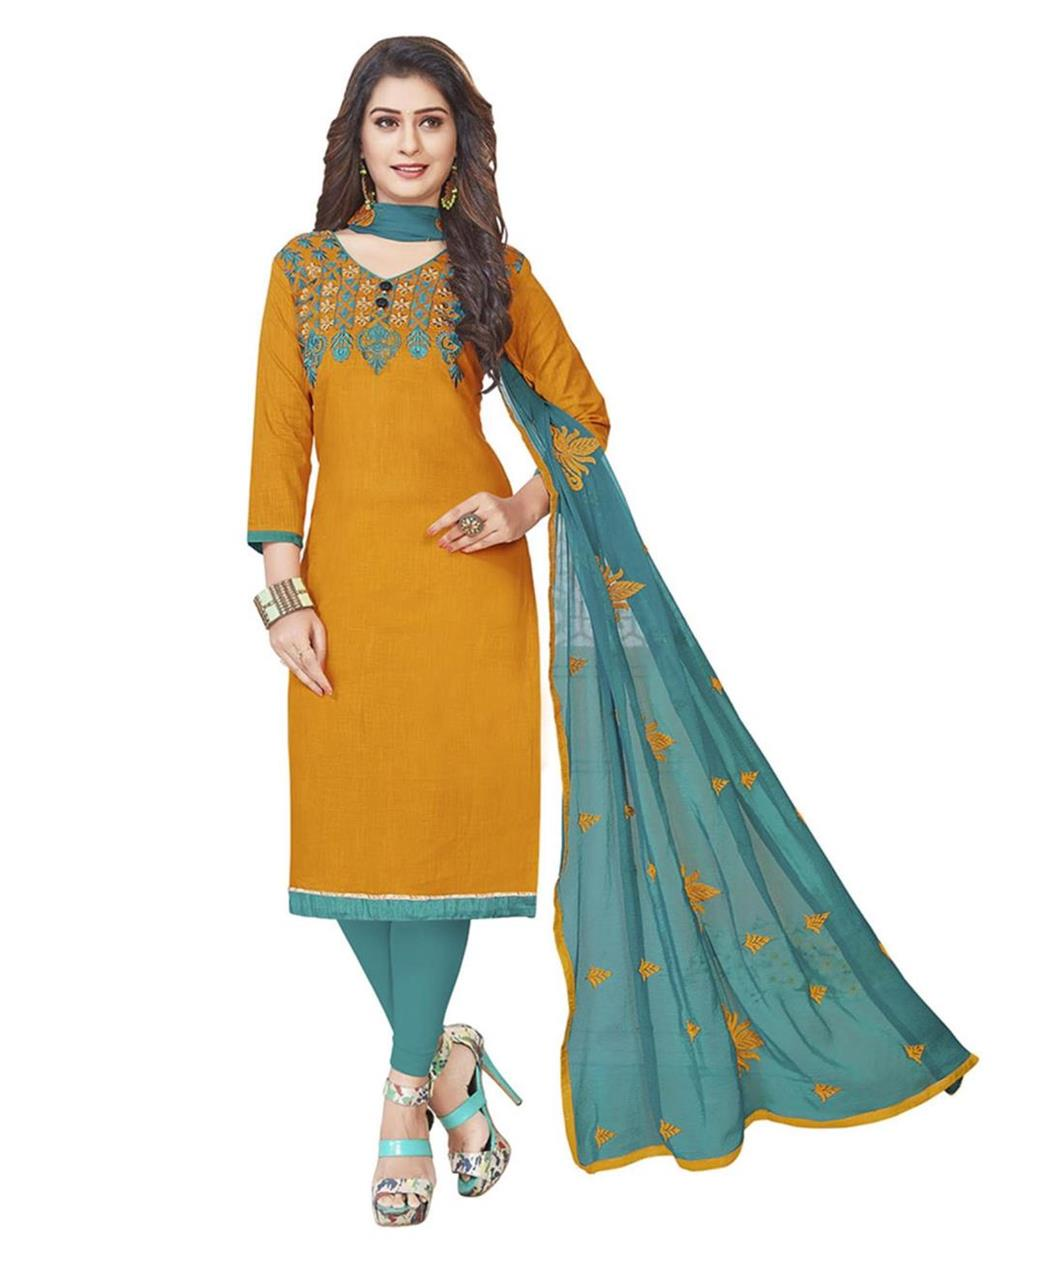 Embroidered Cotton Yellow Straight Cut Salwar